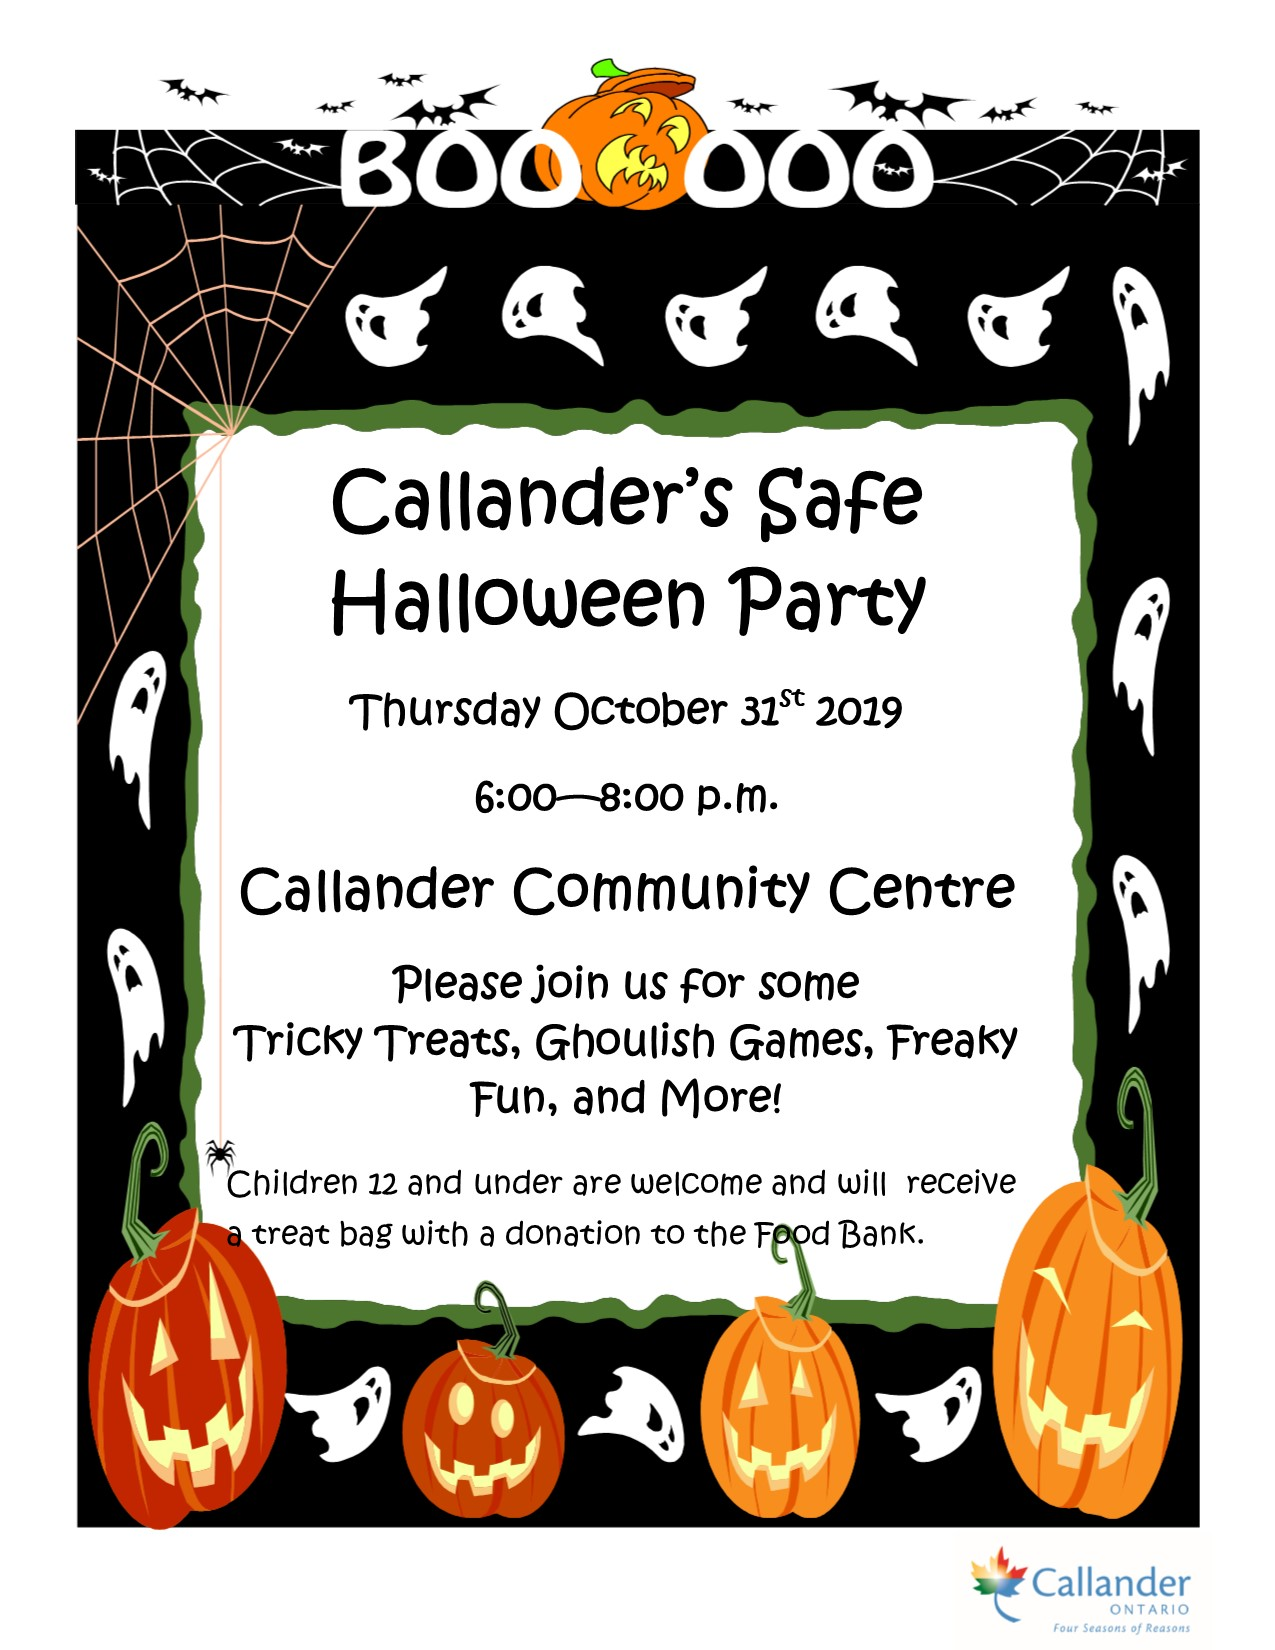 Invitation to Callander's Safe Halloween Party